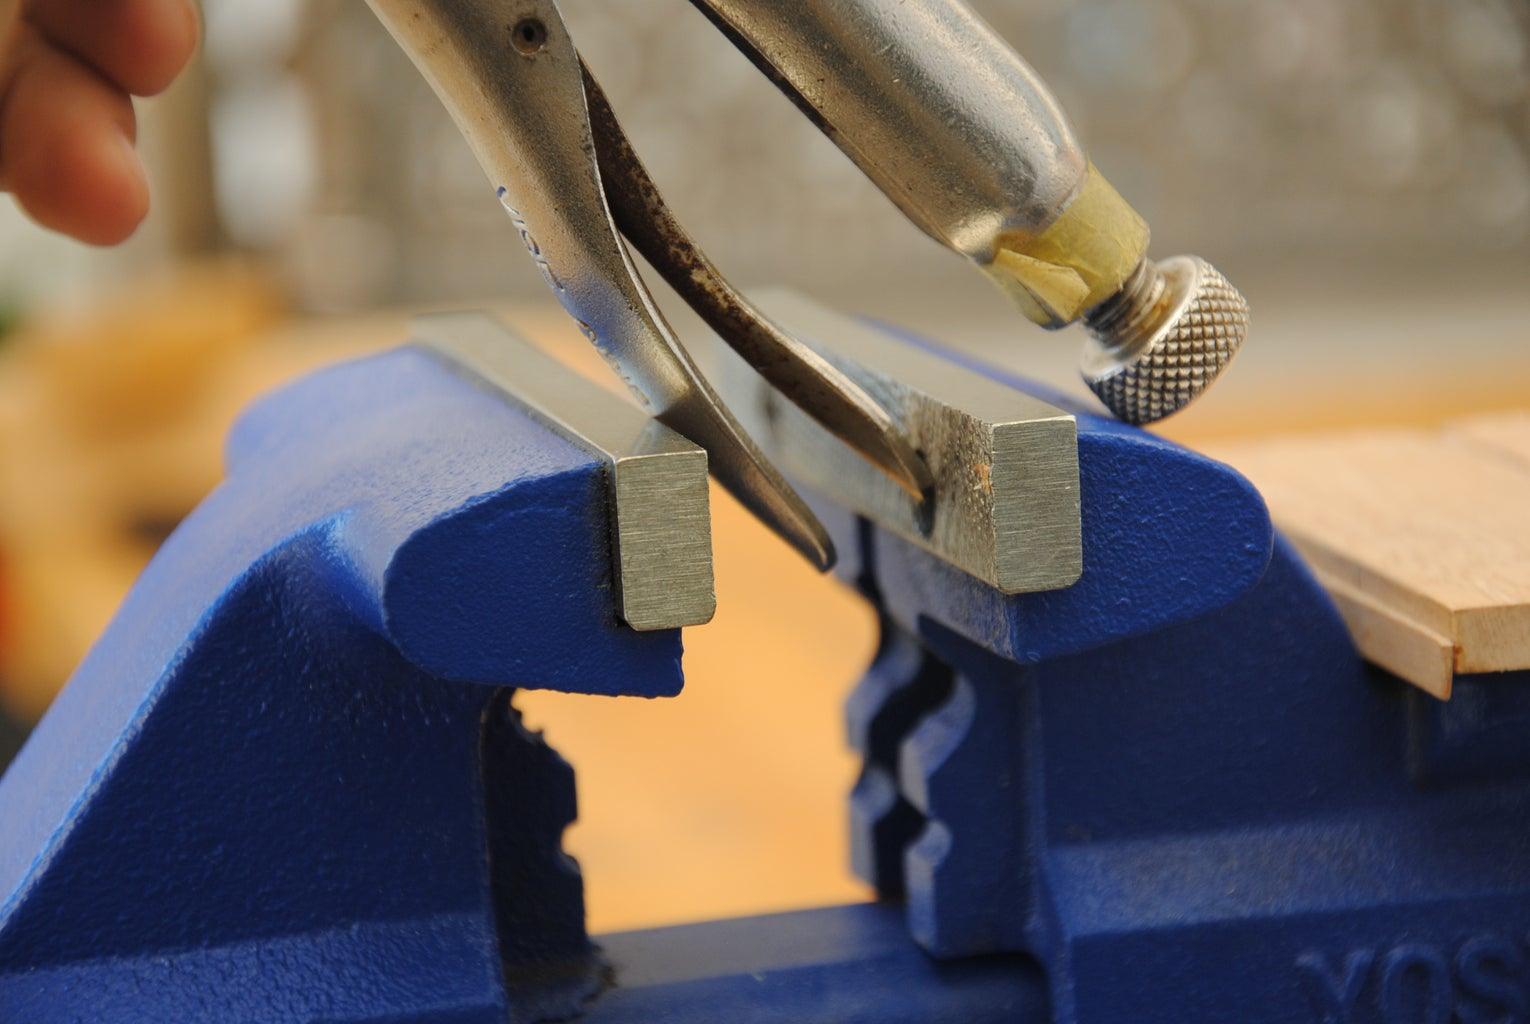 Release Locking Pliers That Are Stuck